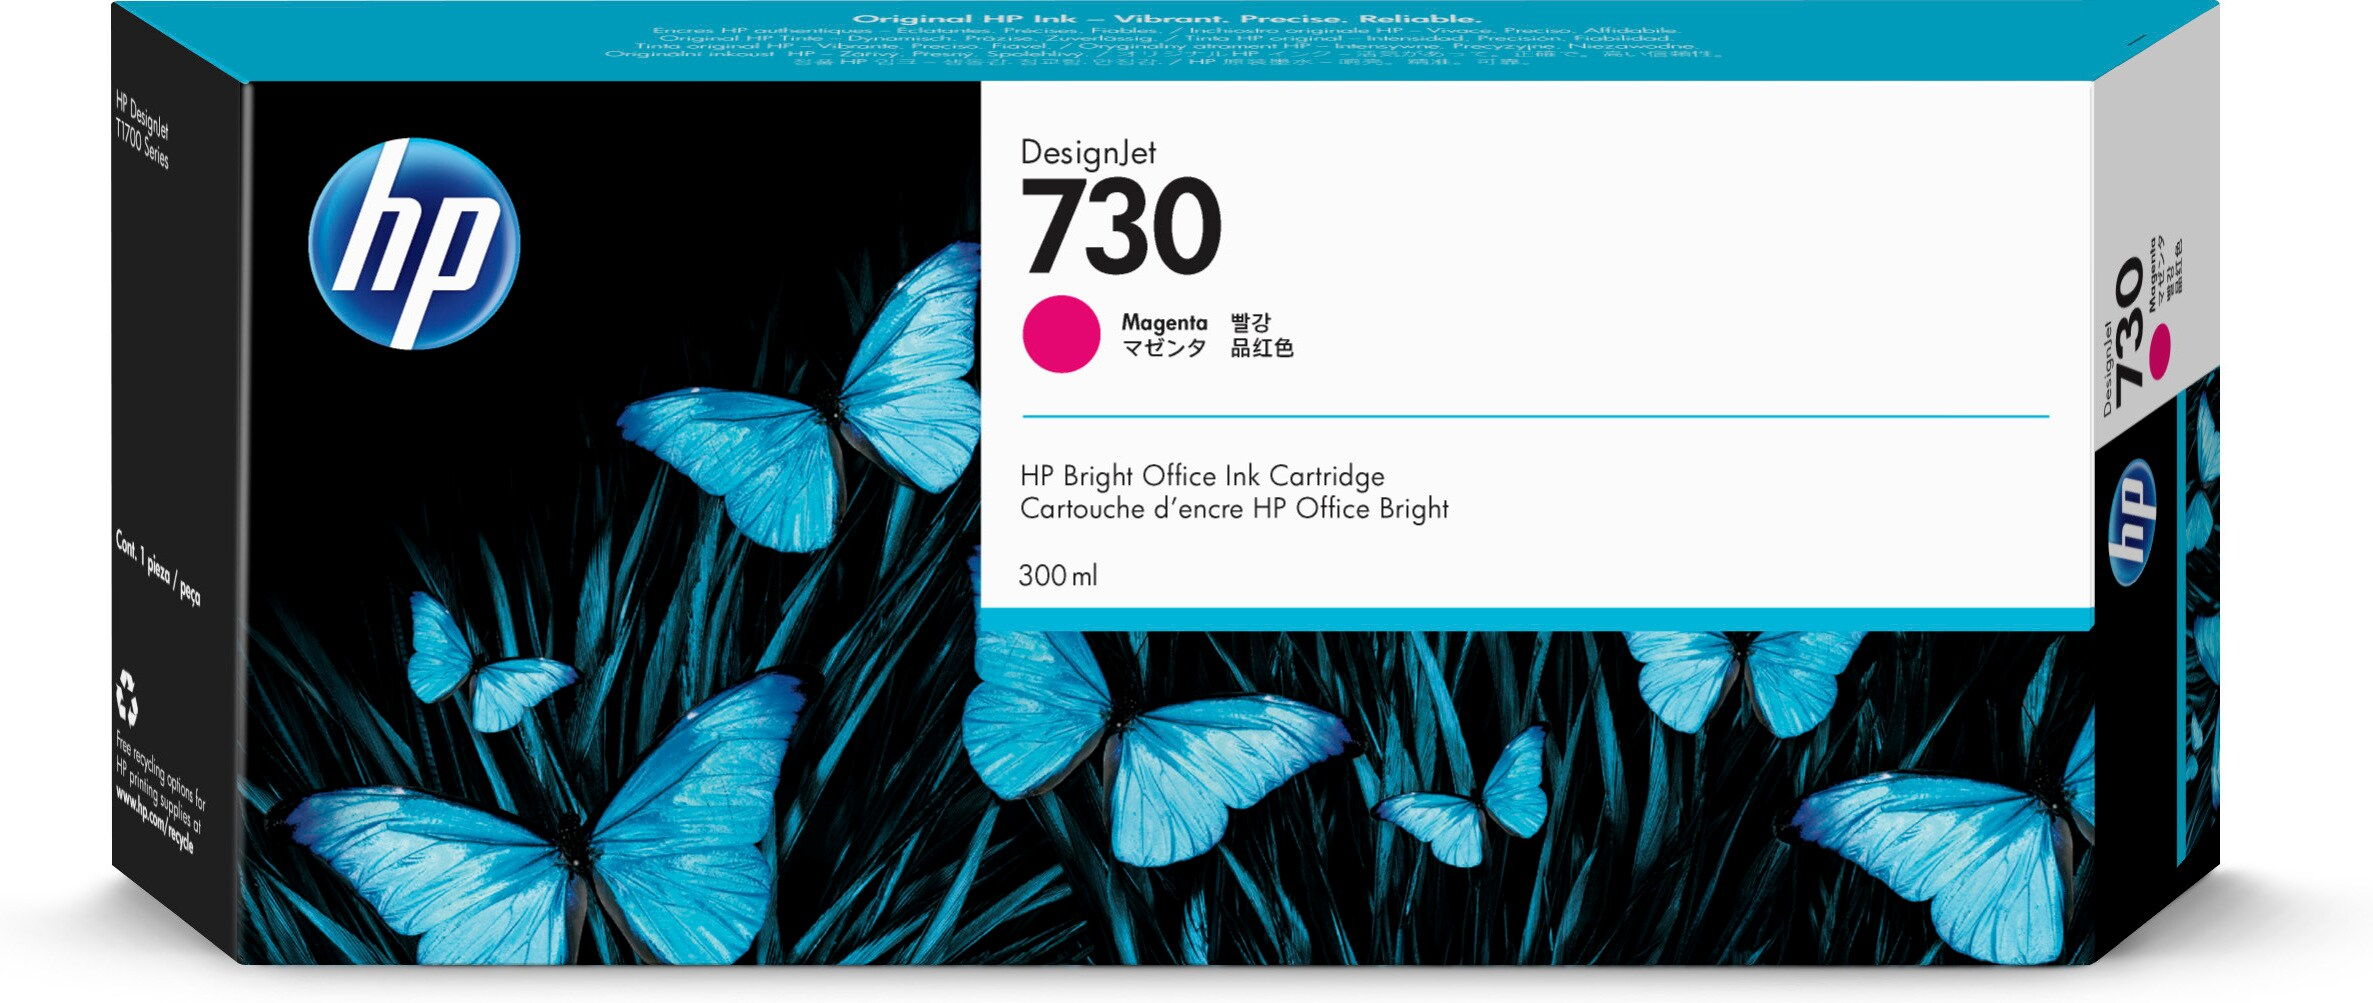 HP No. 730 Ink Cartridge Magenta - 300ml P2v69a